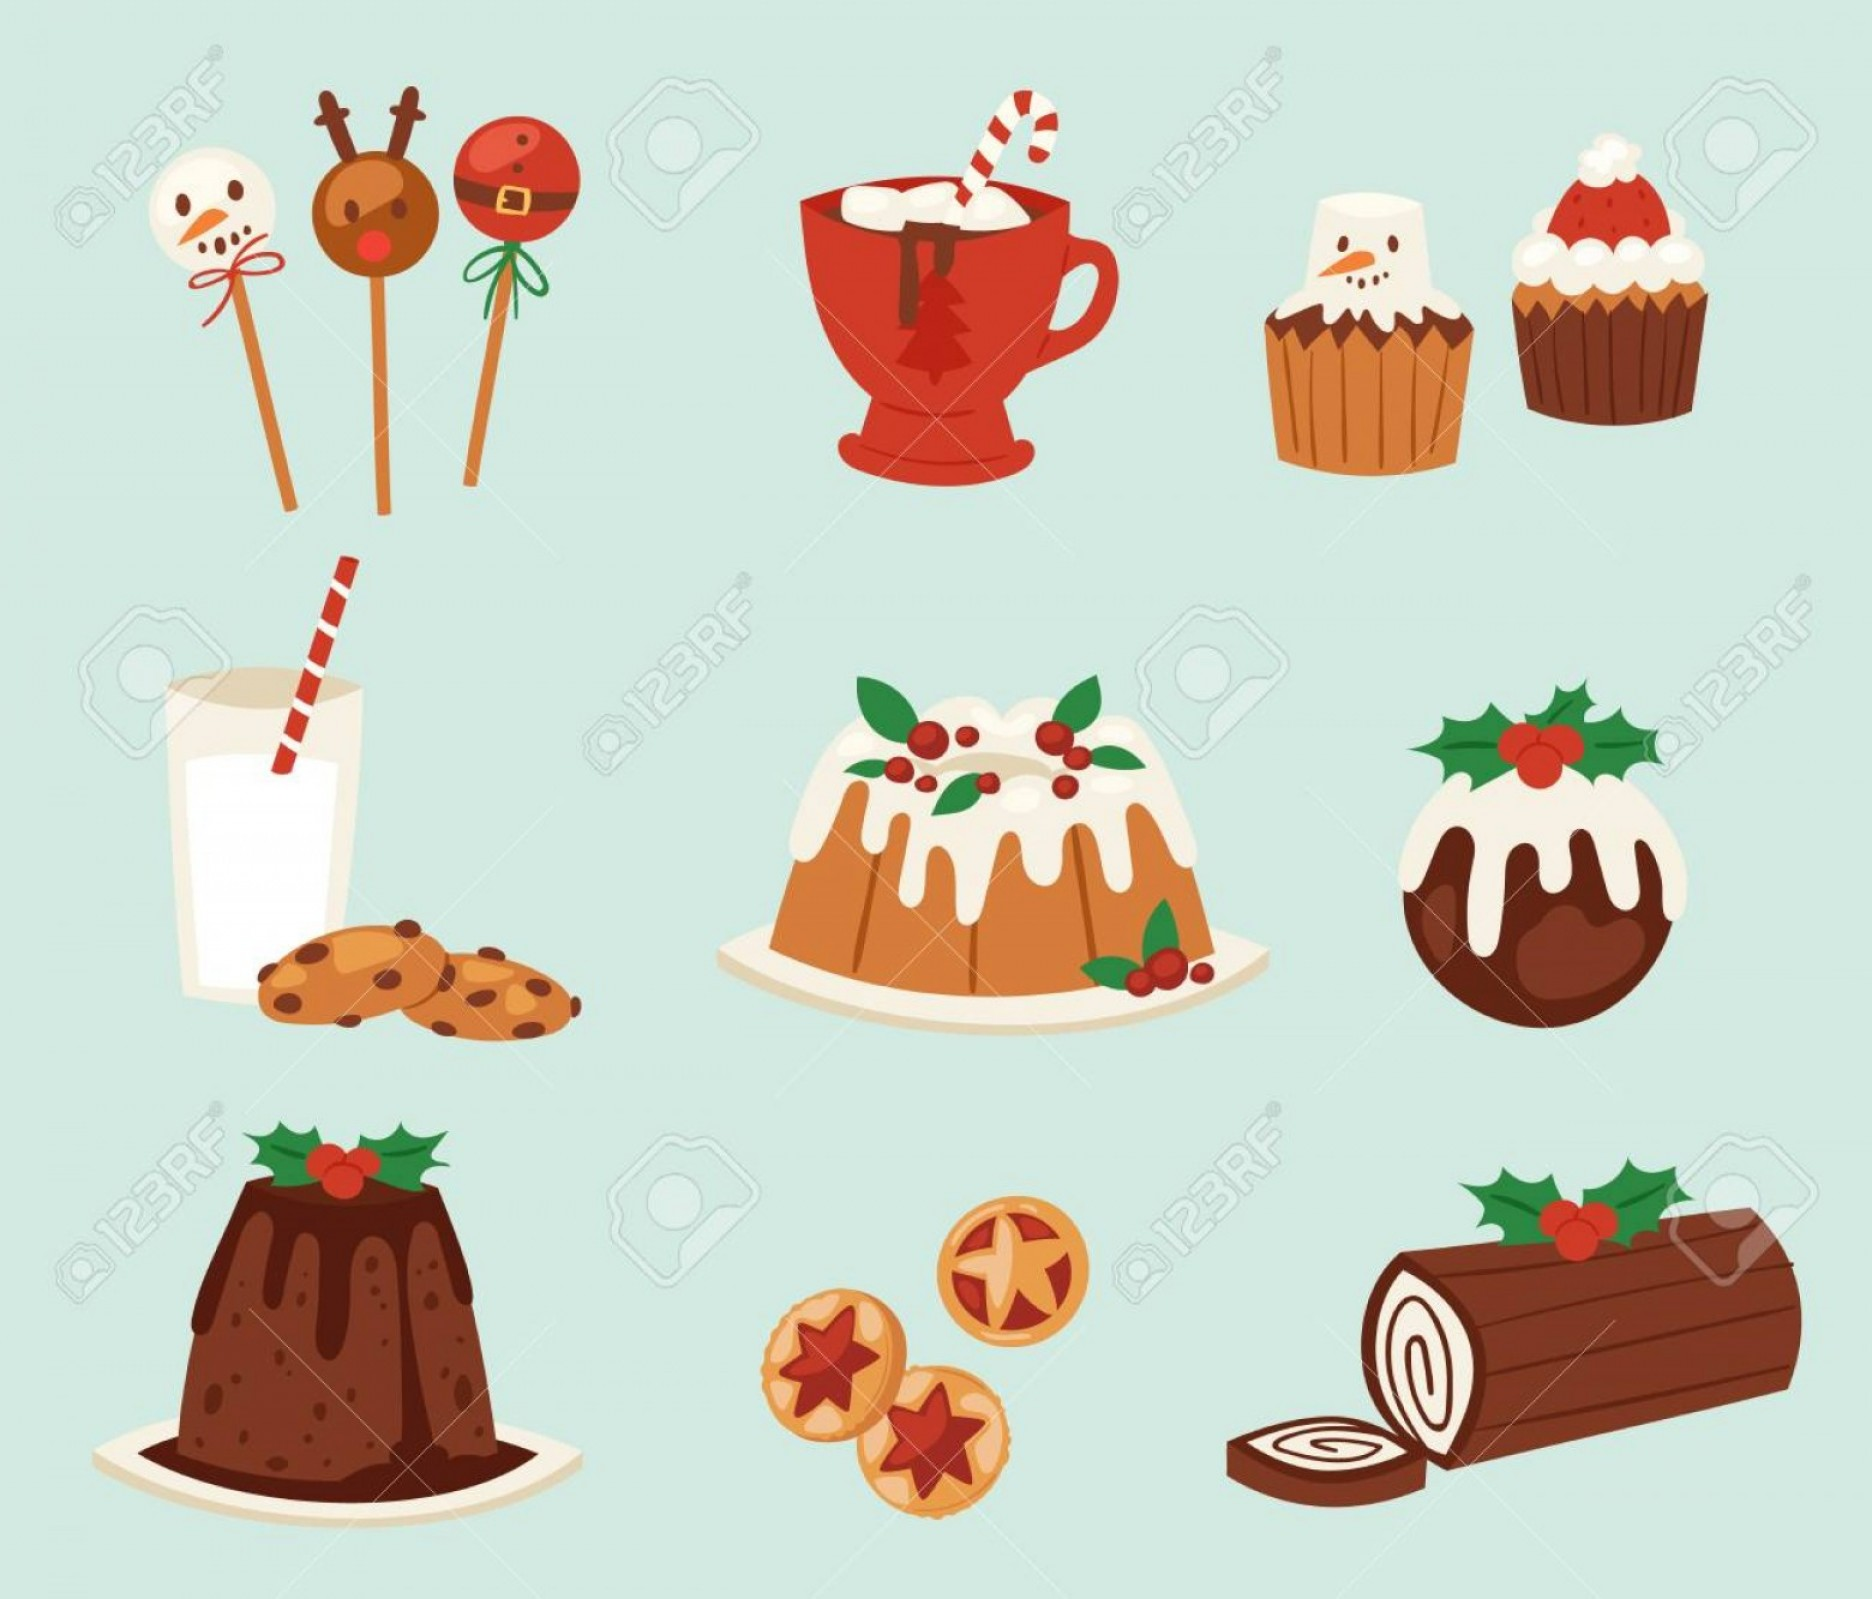 Vectors Holiday Baking: Photostock Vector Christmas Food Vector Desserts Holiday Decoration Xmas Family Diner Sweet Celebration Meal Illustrat